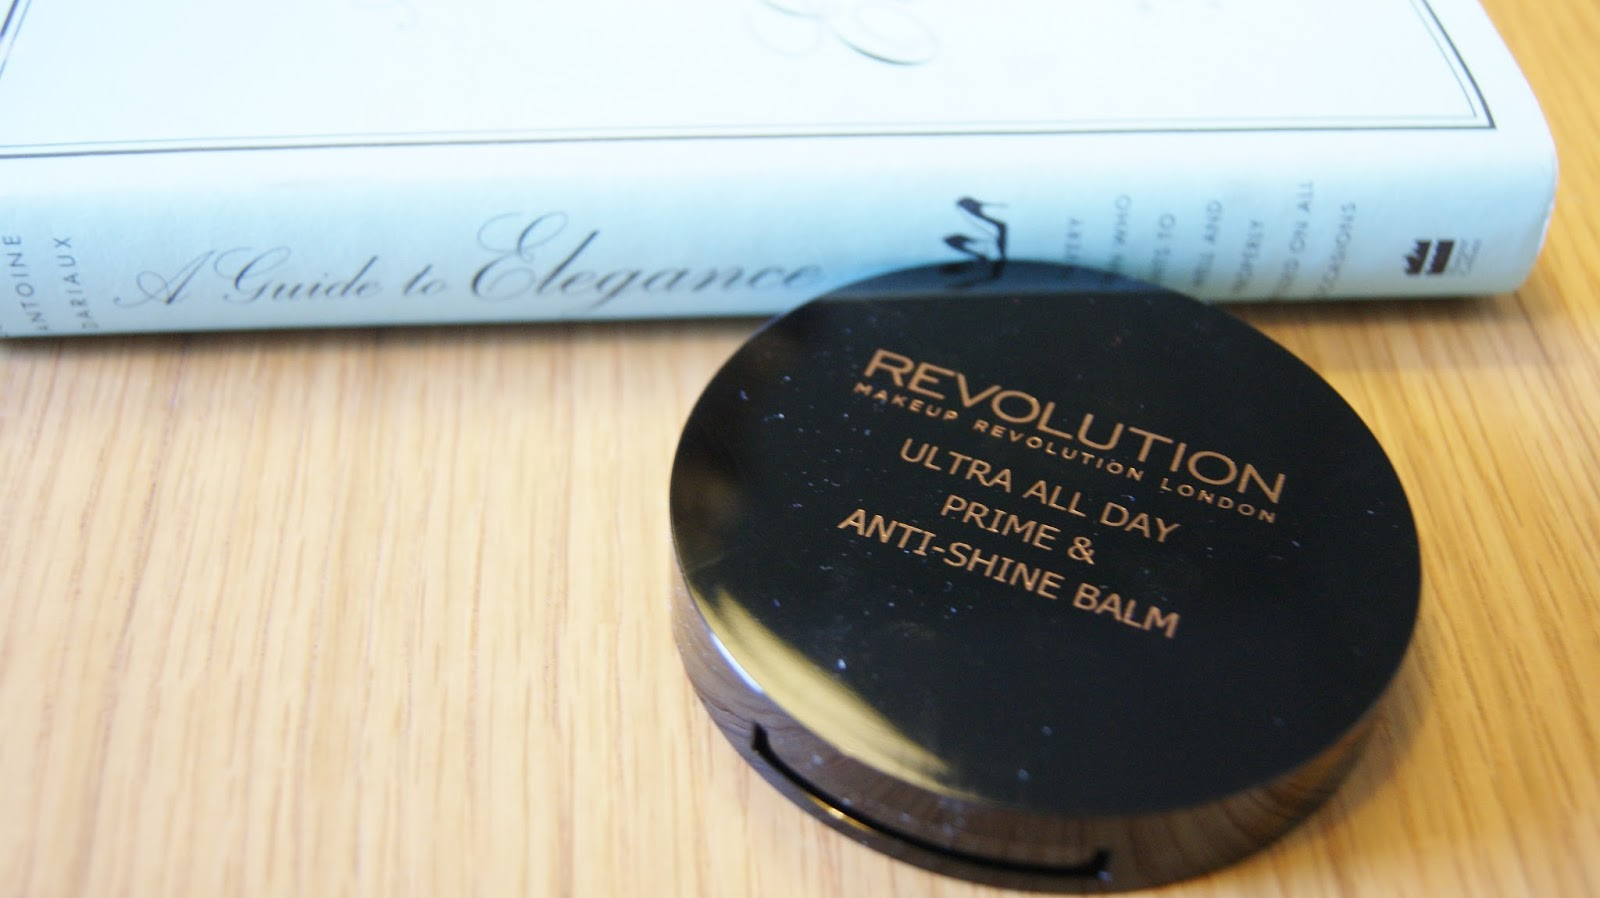 Makeup Revolution All Day Prime & Anti-Shine Balm Pan Compact